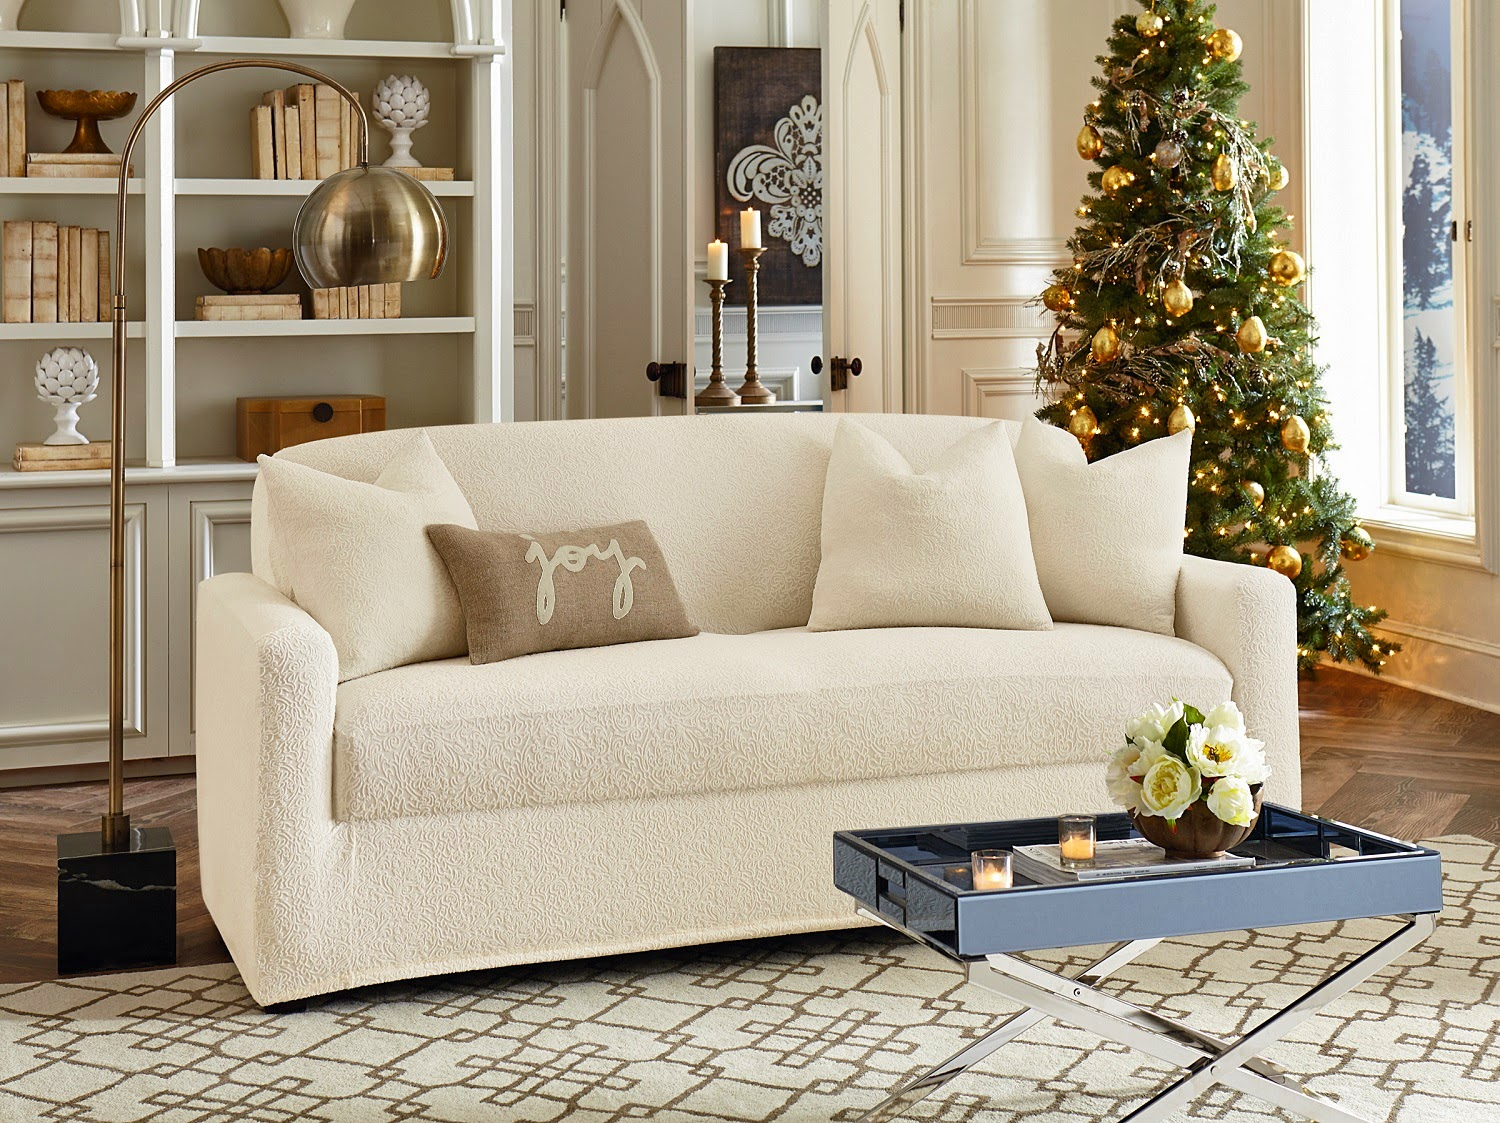 Cushion Slipcovers | Slipcovers for Sofas with Cushions Separate | Sofa Slipcover